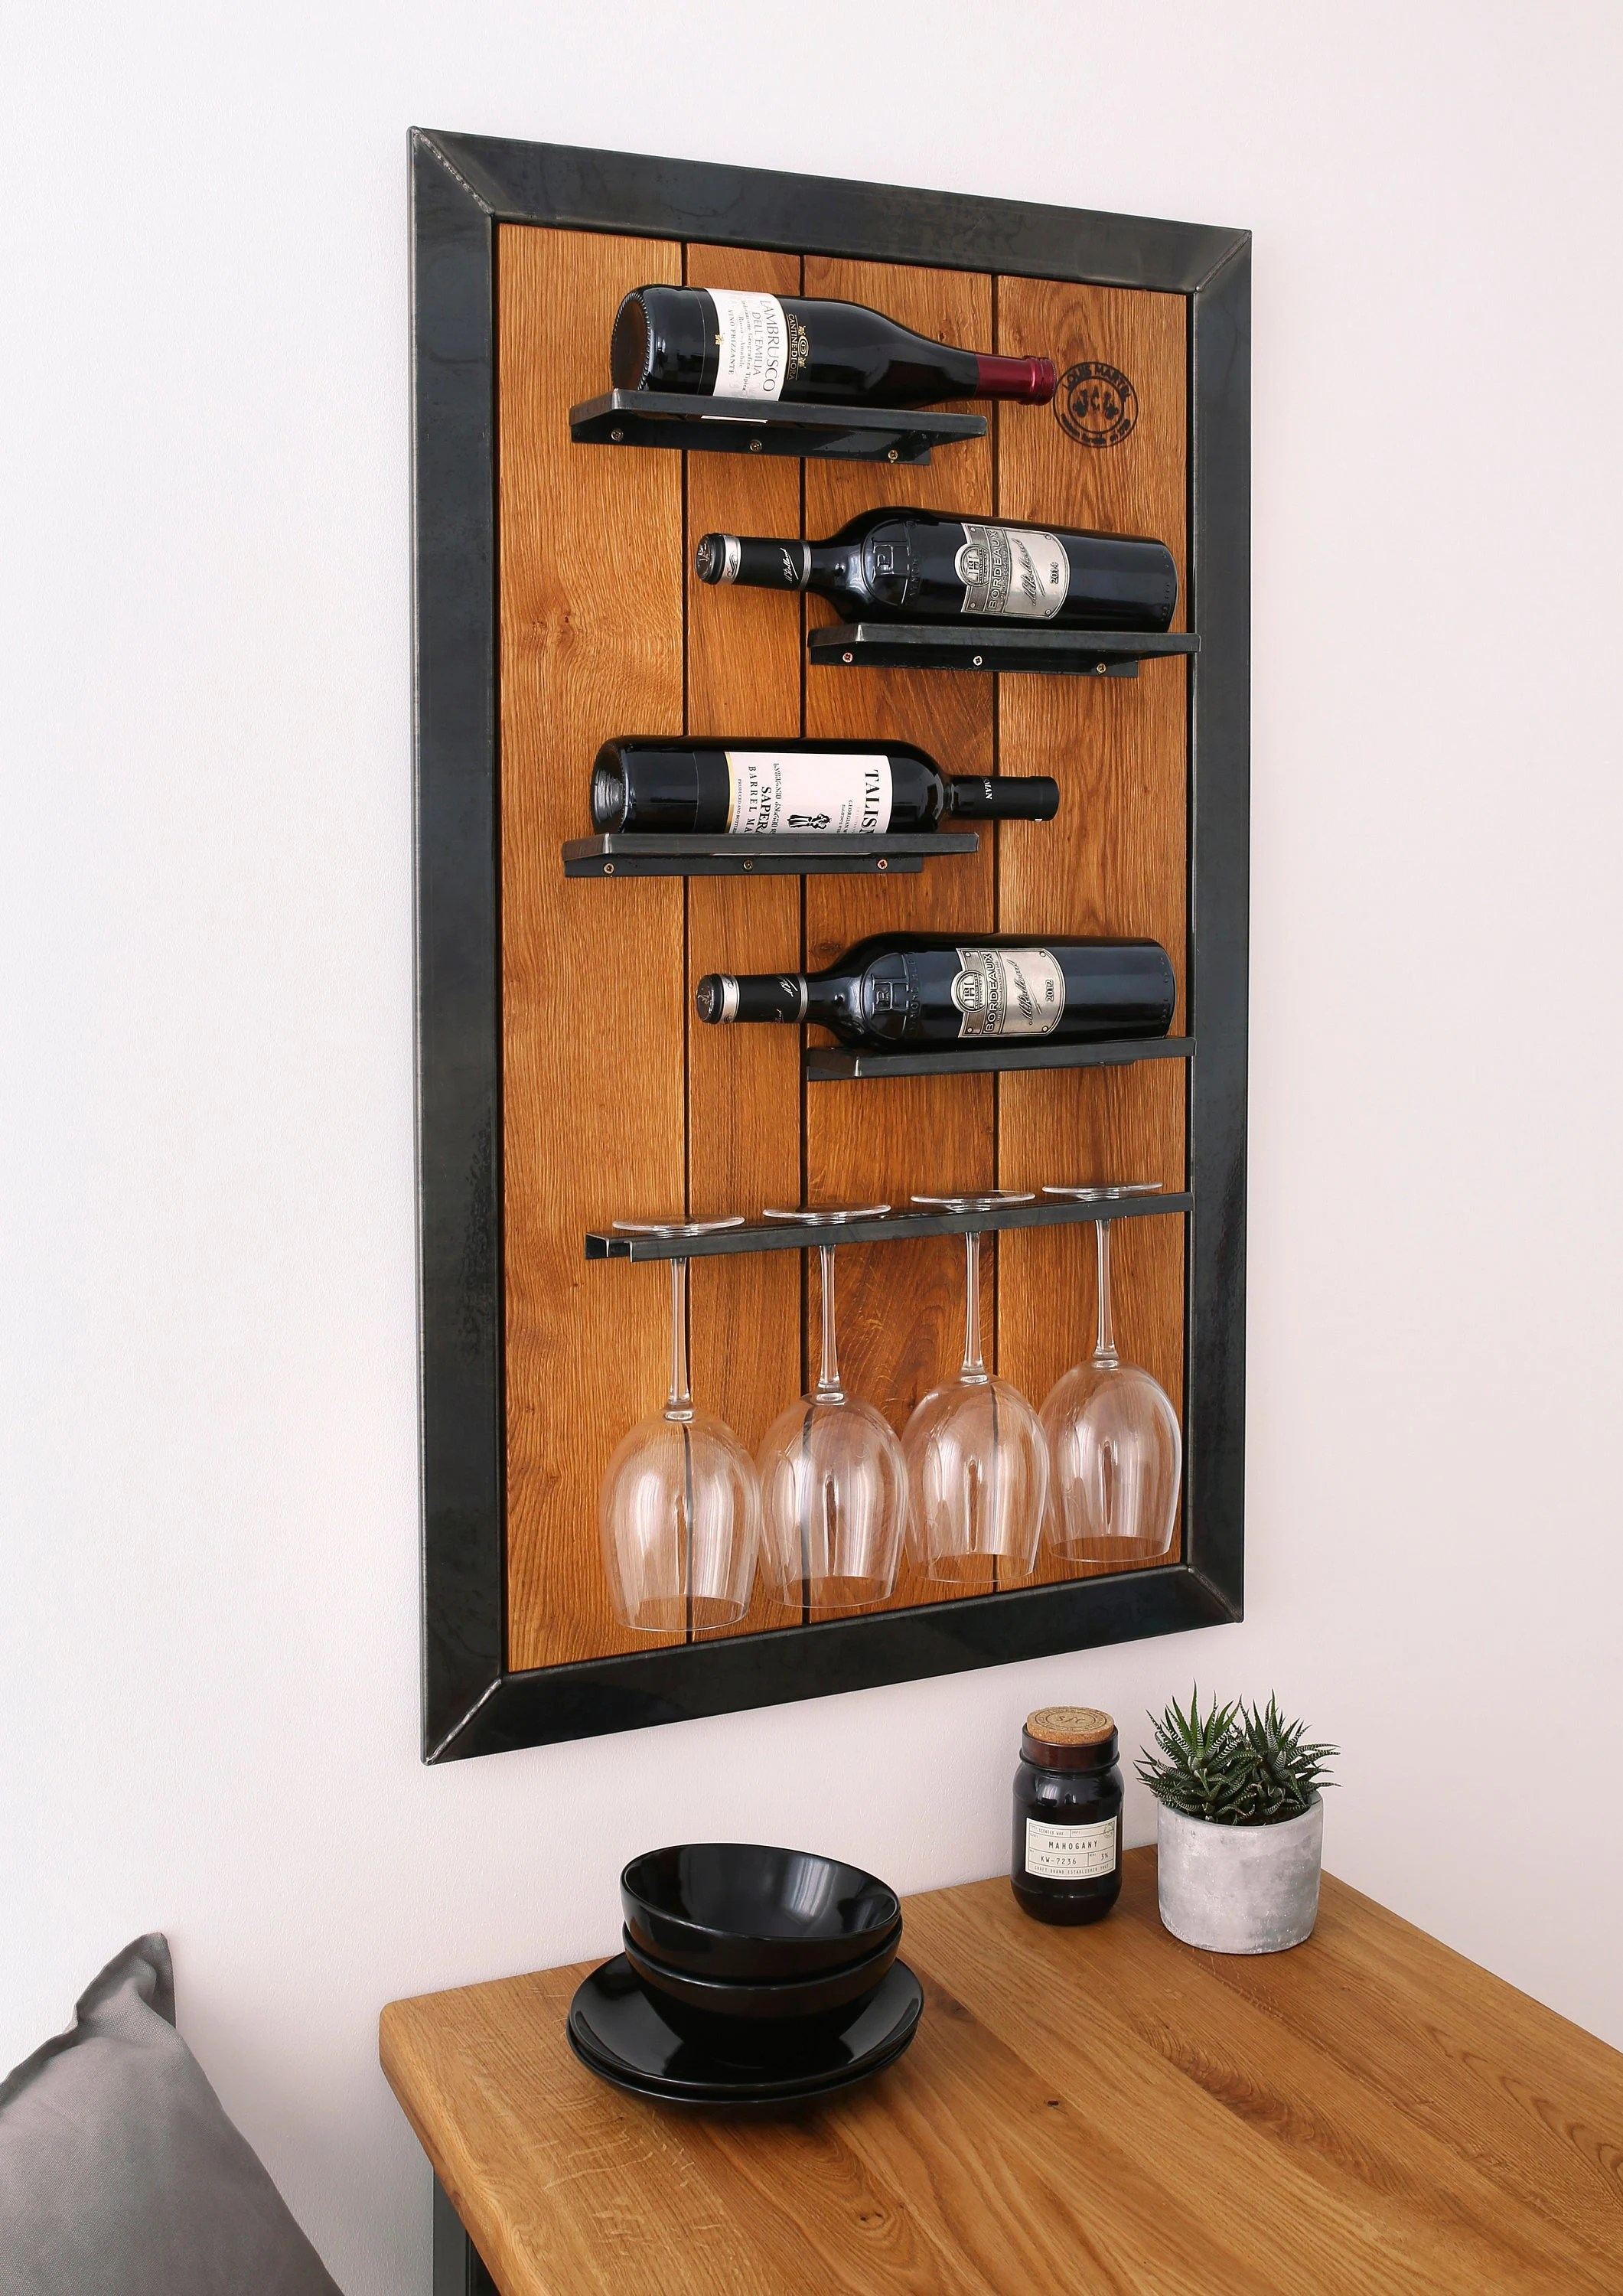 Eiche Wandregal Weinregal Wein Eiche Wandregal Louis Martel Flaschenregal Weinschrank Glas Regal